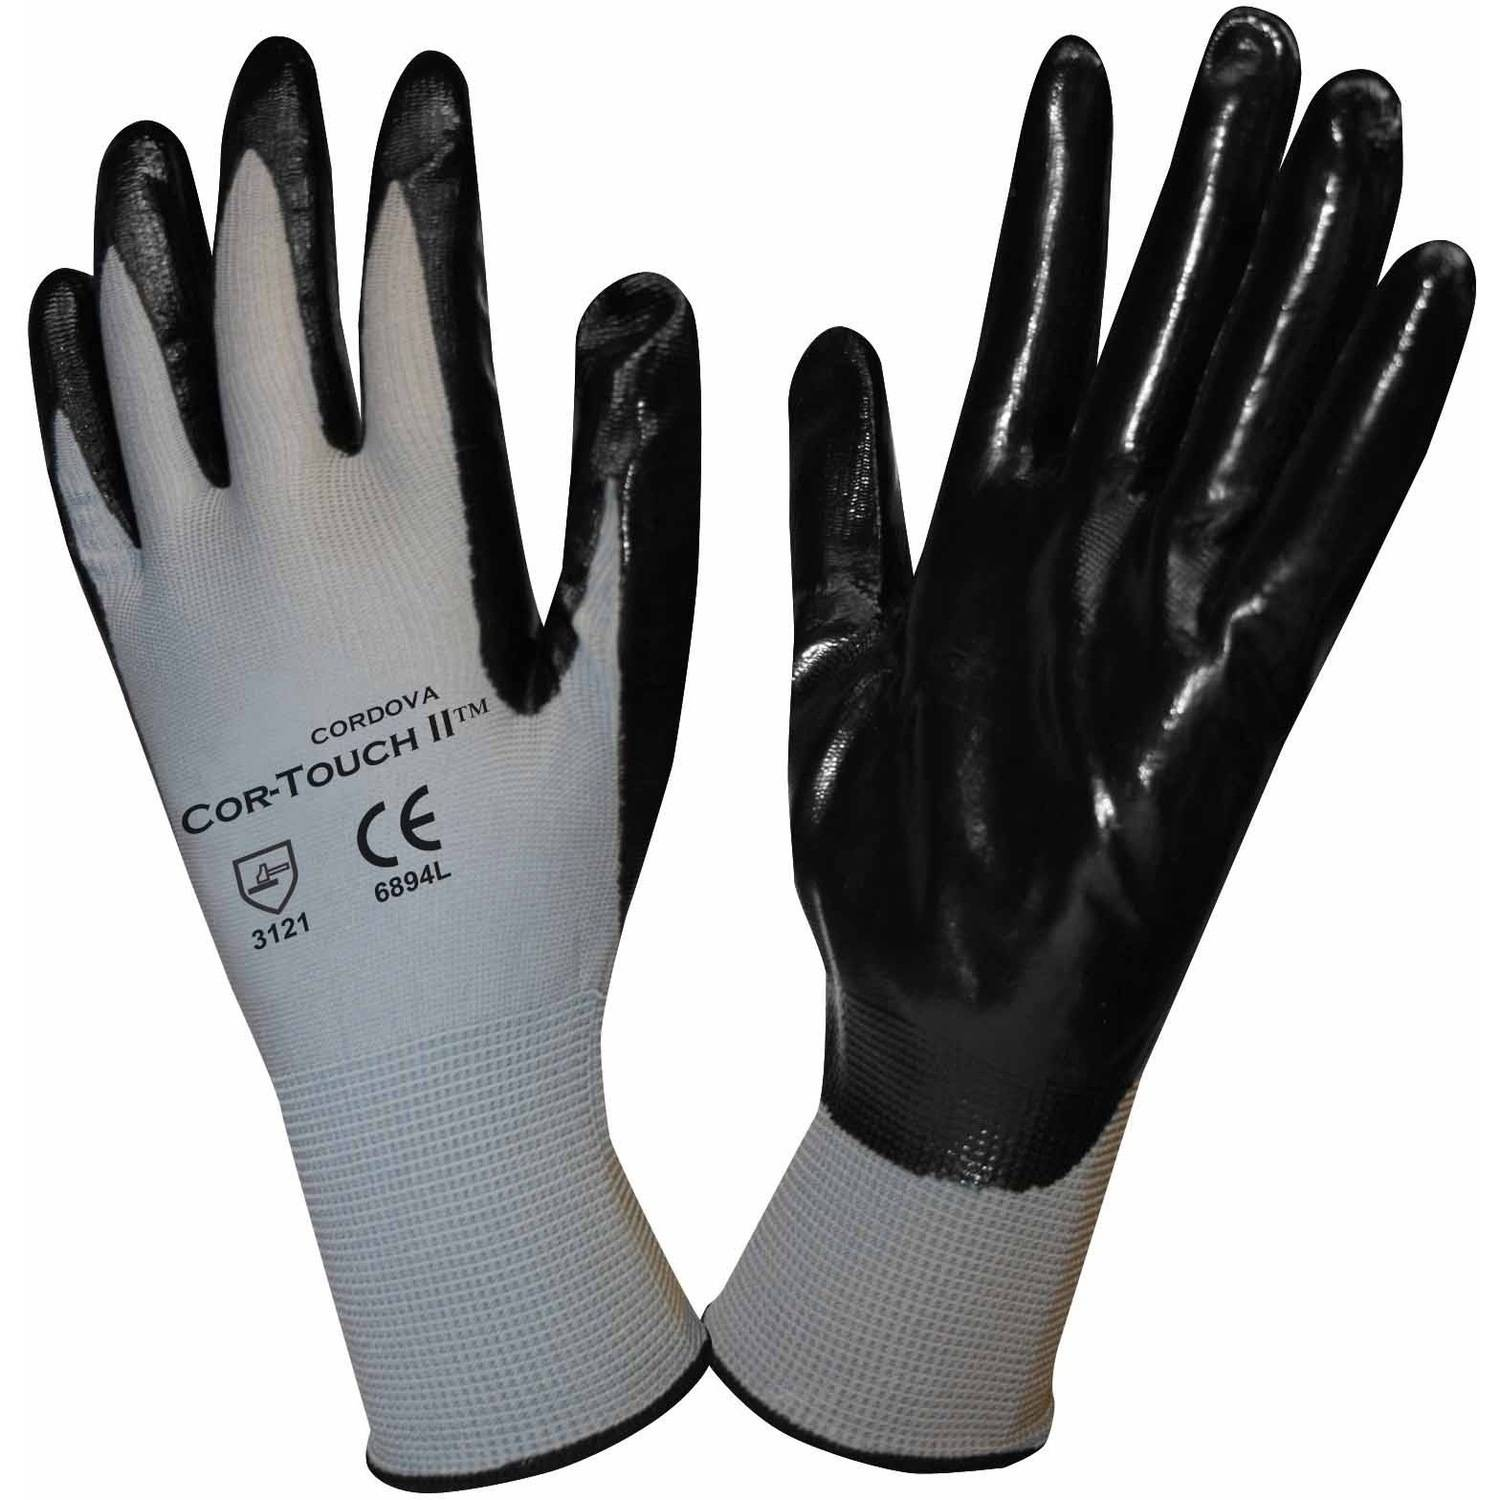 Cor-Touch II Polyester Work Gloves with a Black Flat Nitrile Coating, Pack of 12 Pairs